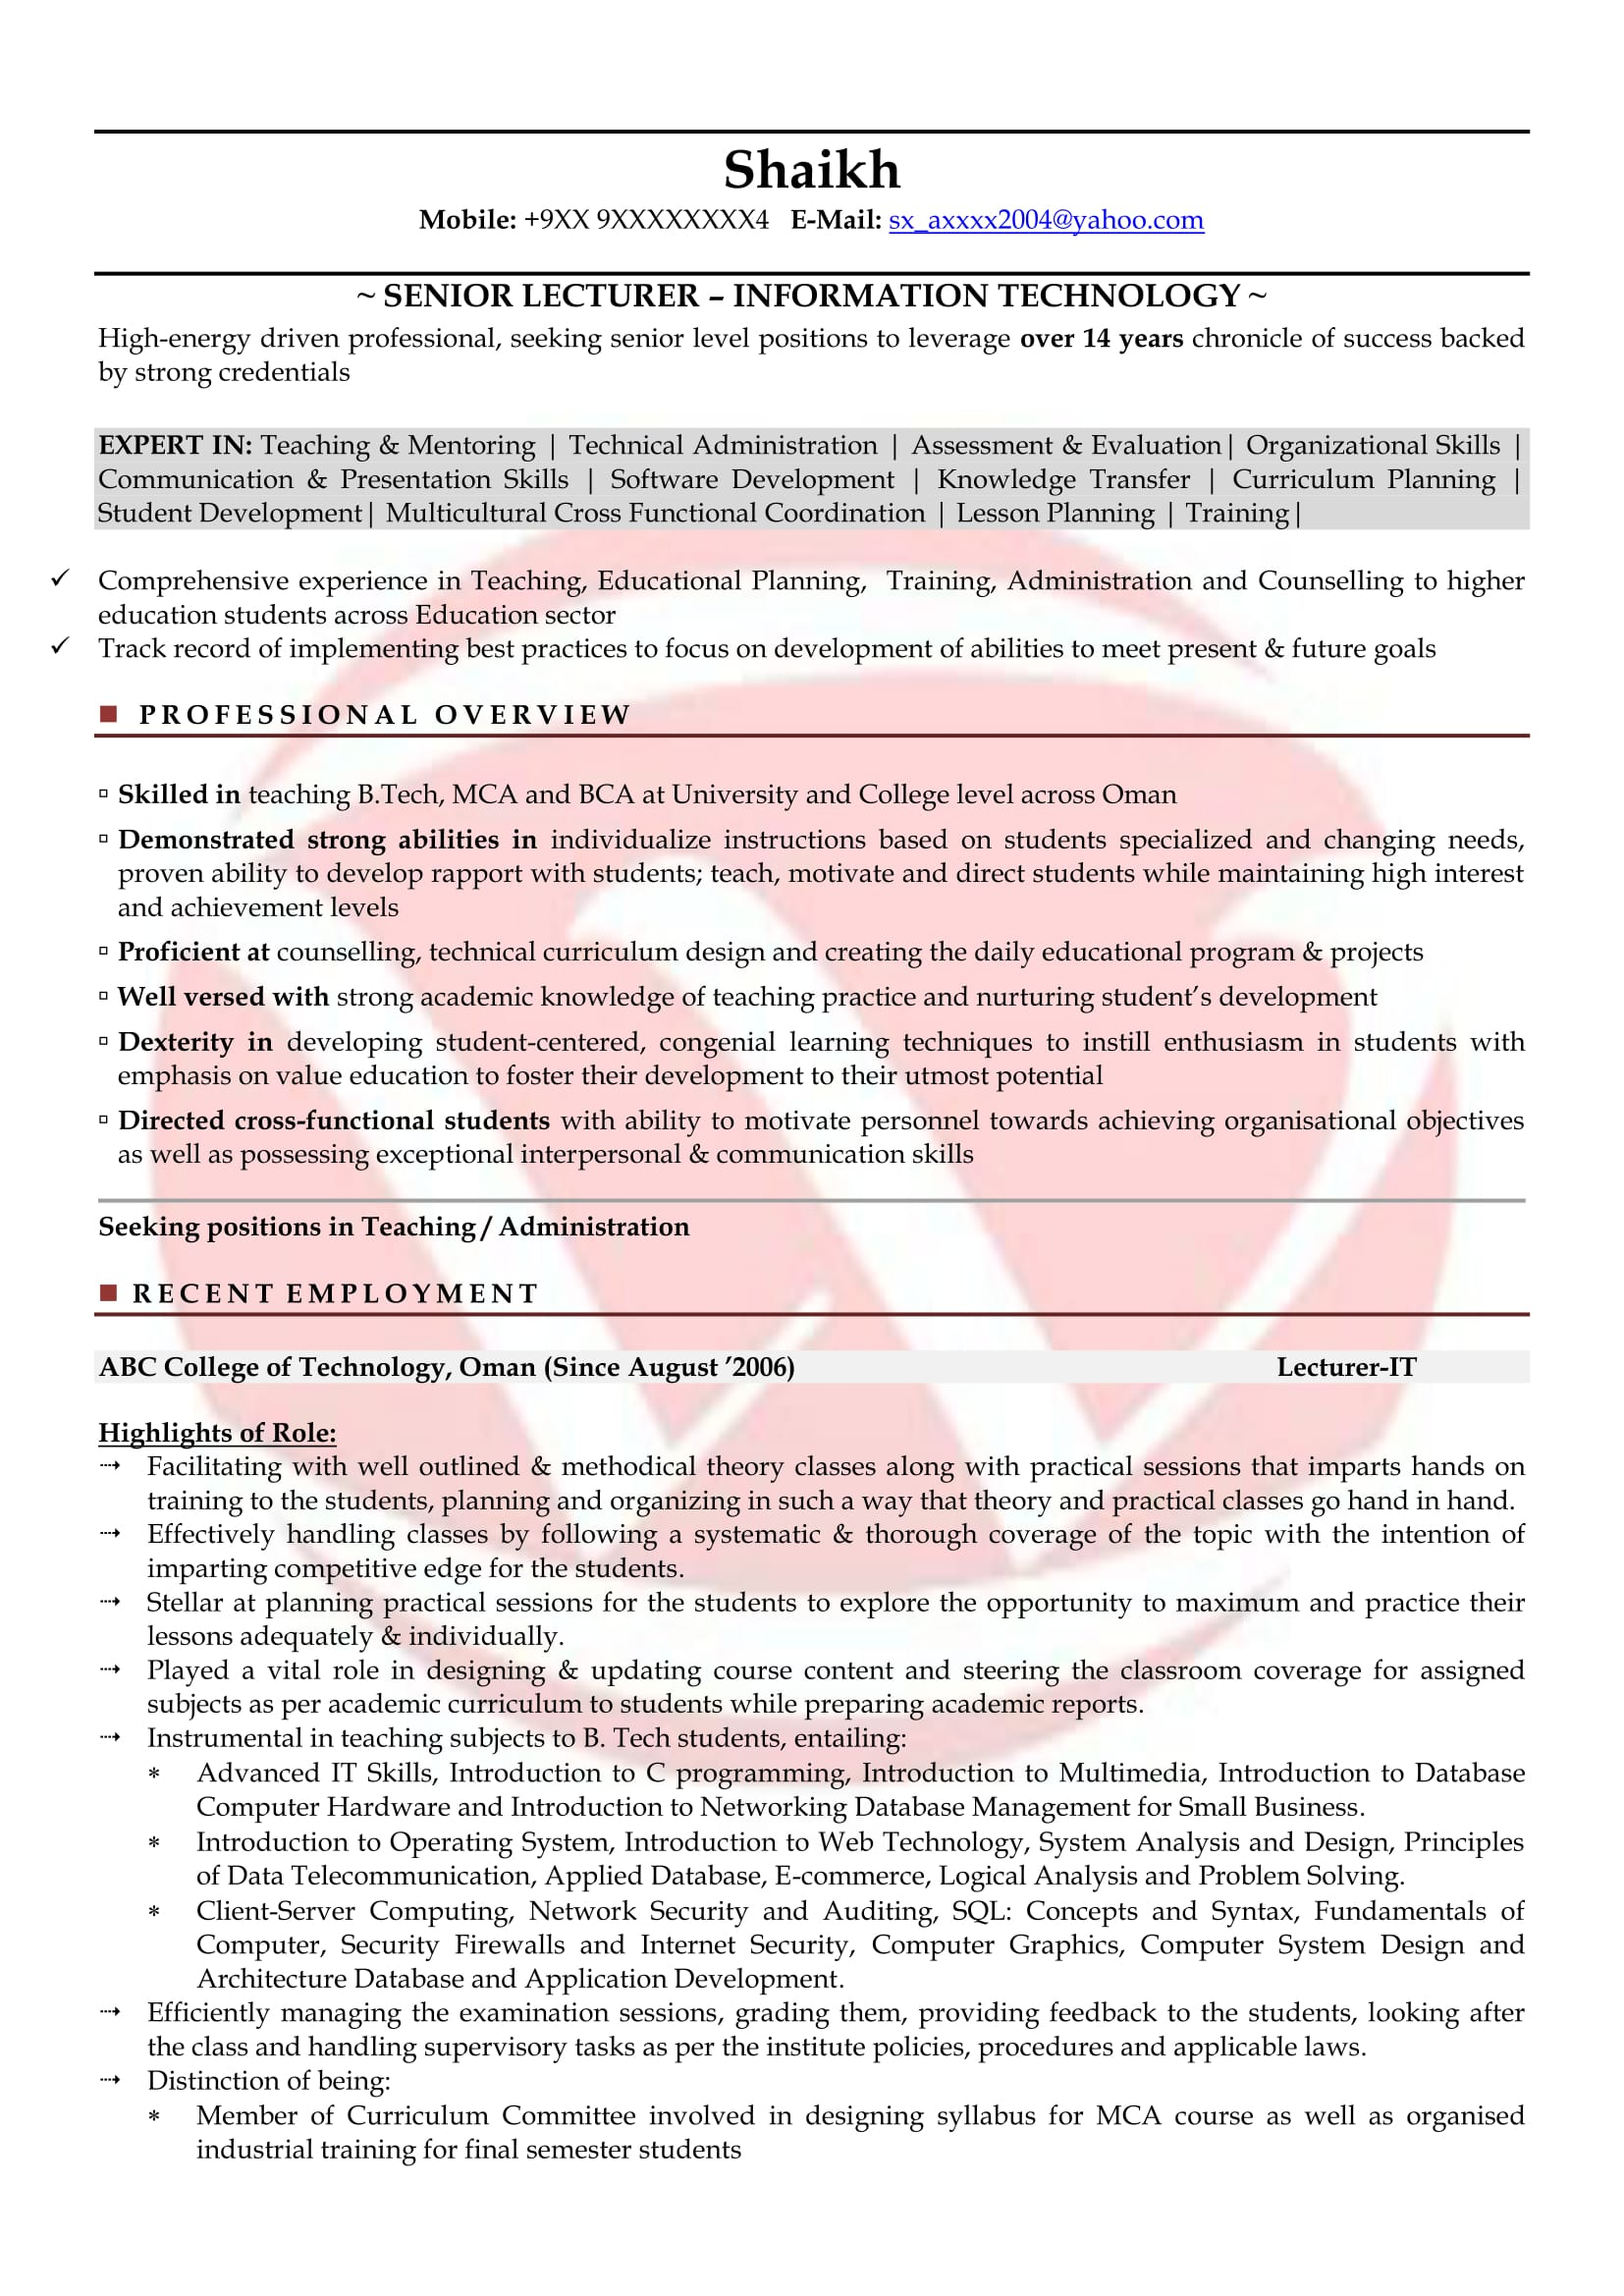 lecturer sample resumes resume format templates for post trms free template builder Resume Resume Format For Lecturer Post